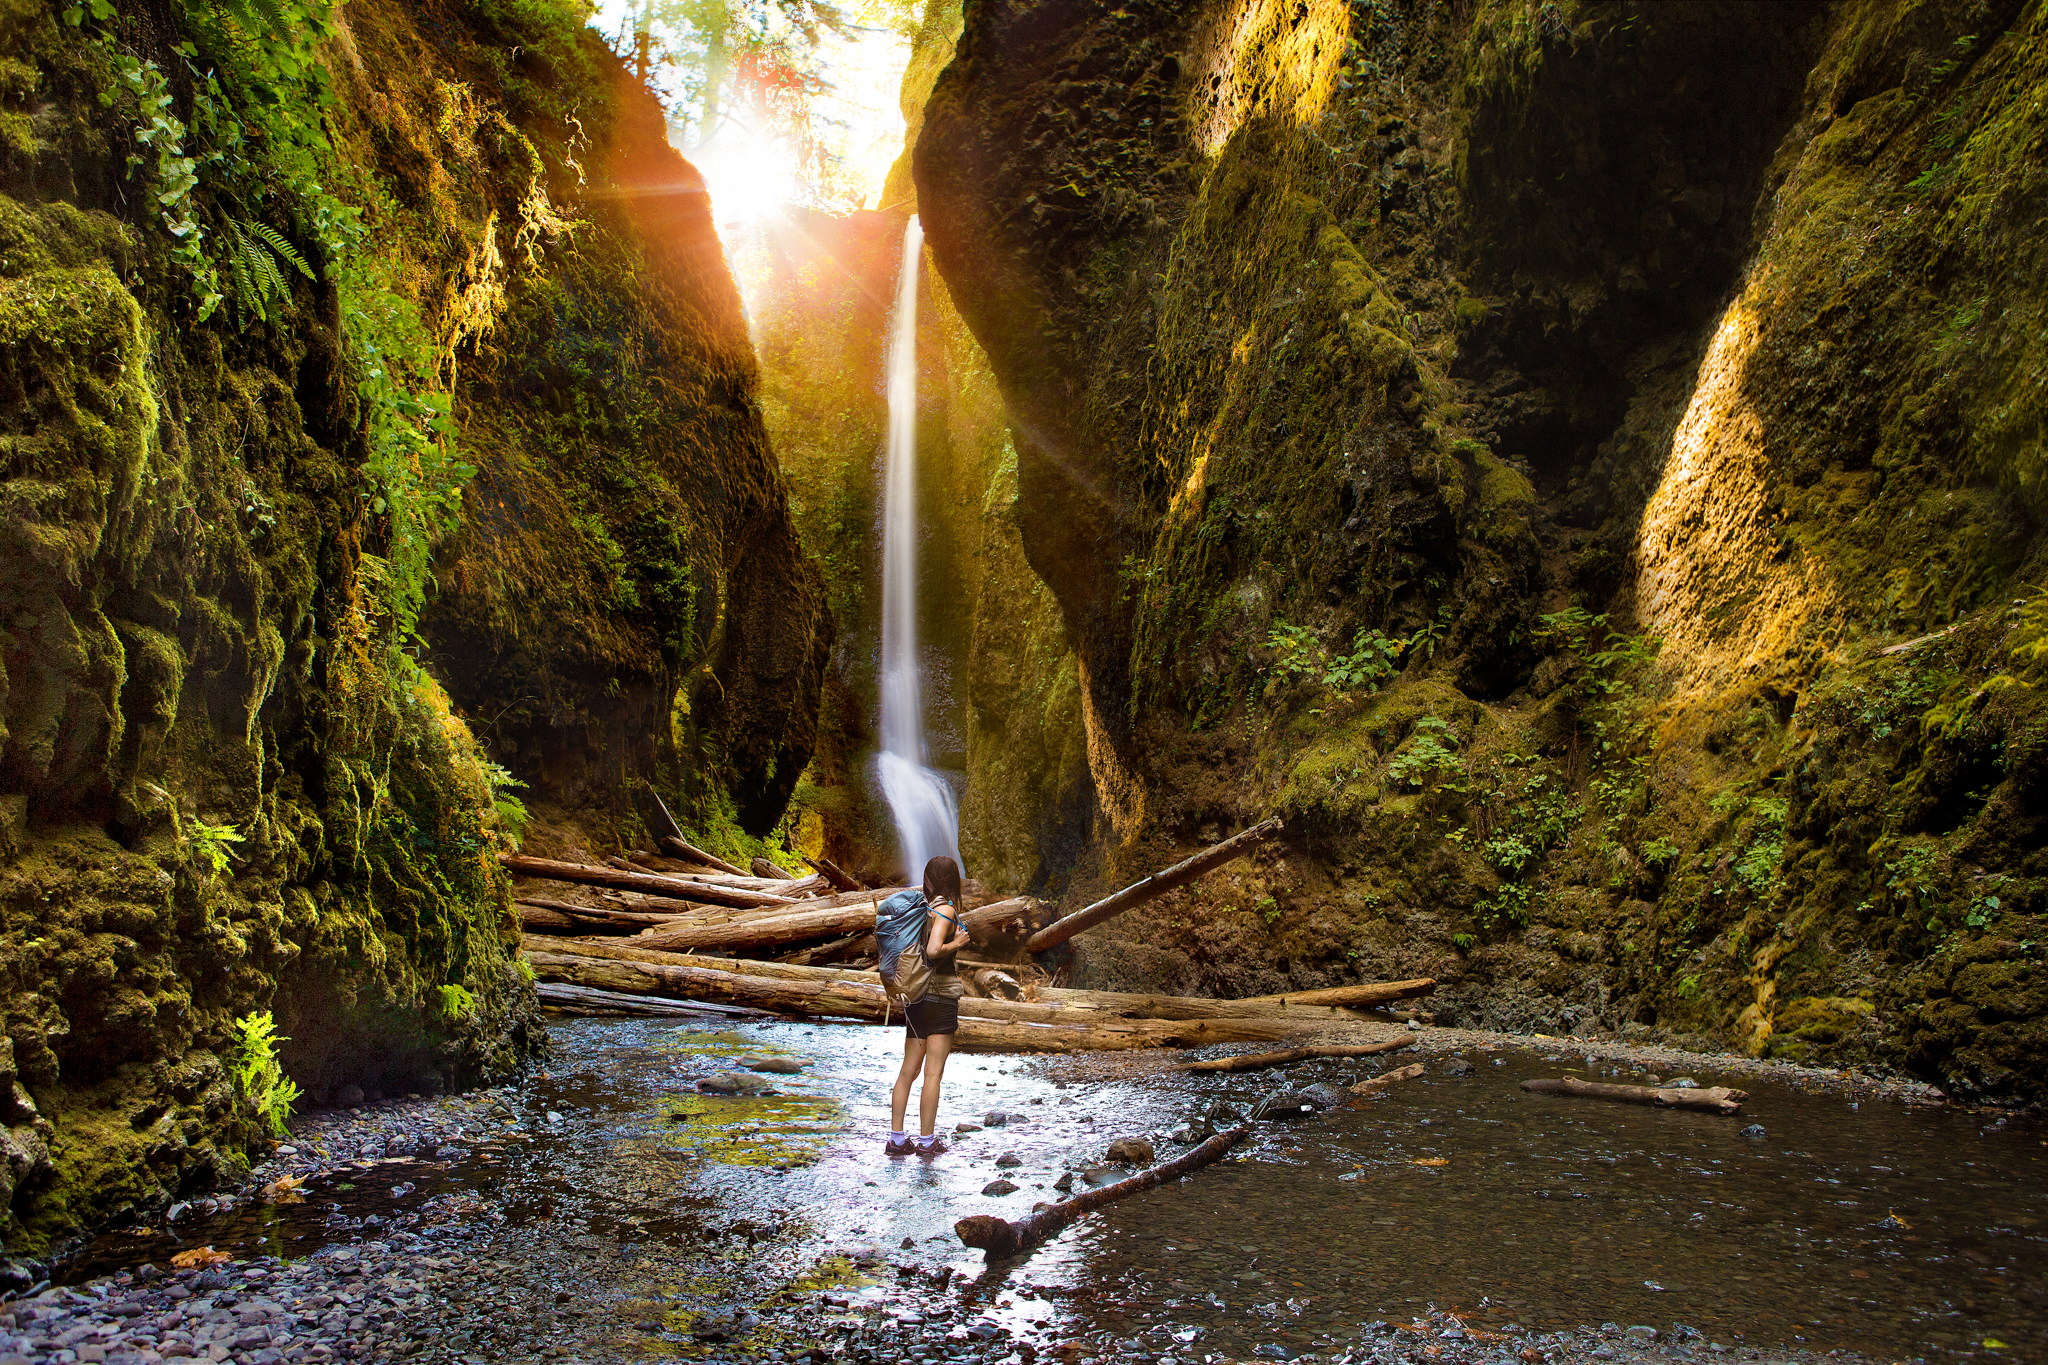 This is a composite of different aspects of the hike. This is what it felt like. Often we take an artistic license in our photographs to evoke the mood/atmosphere of the place. You can't quite see the waterfall from this view, but it sums up all of the cool experiences of the journey.